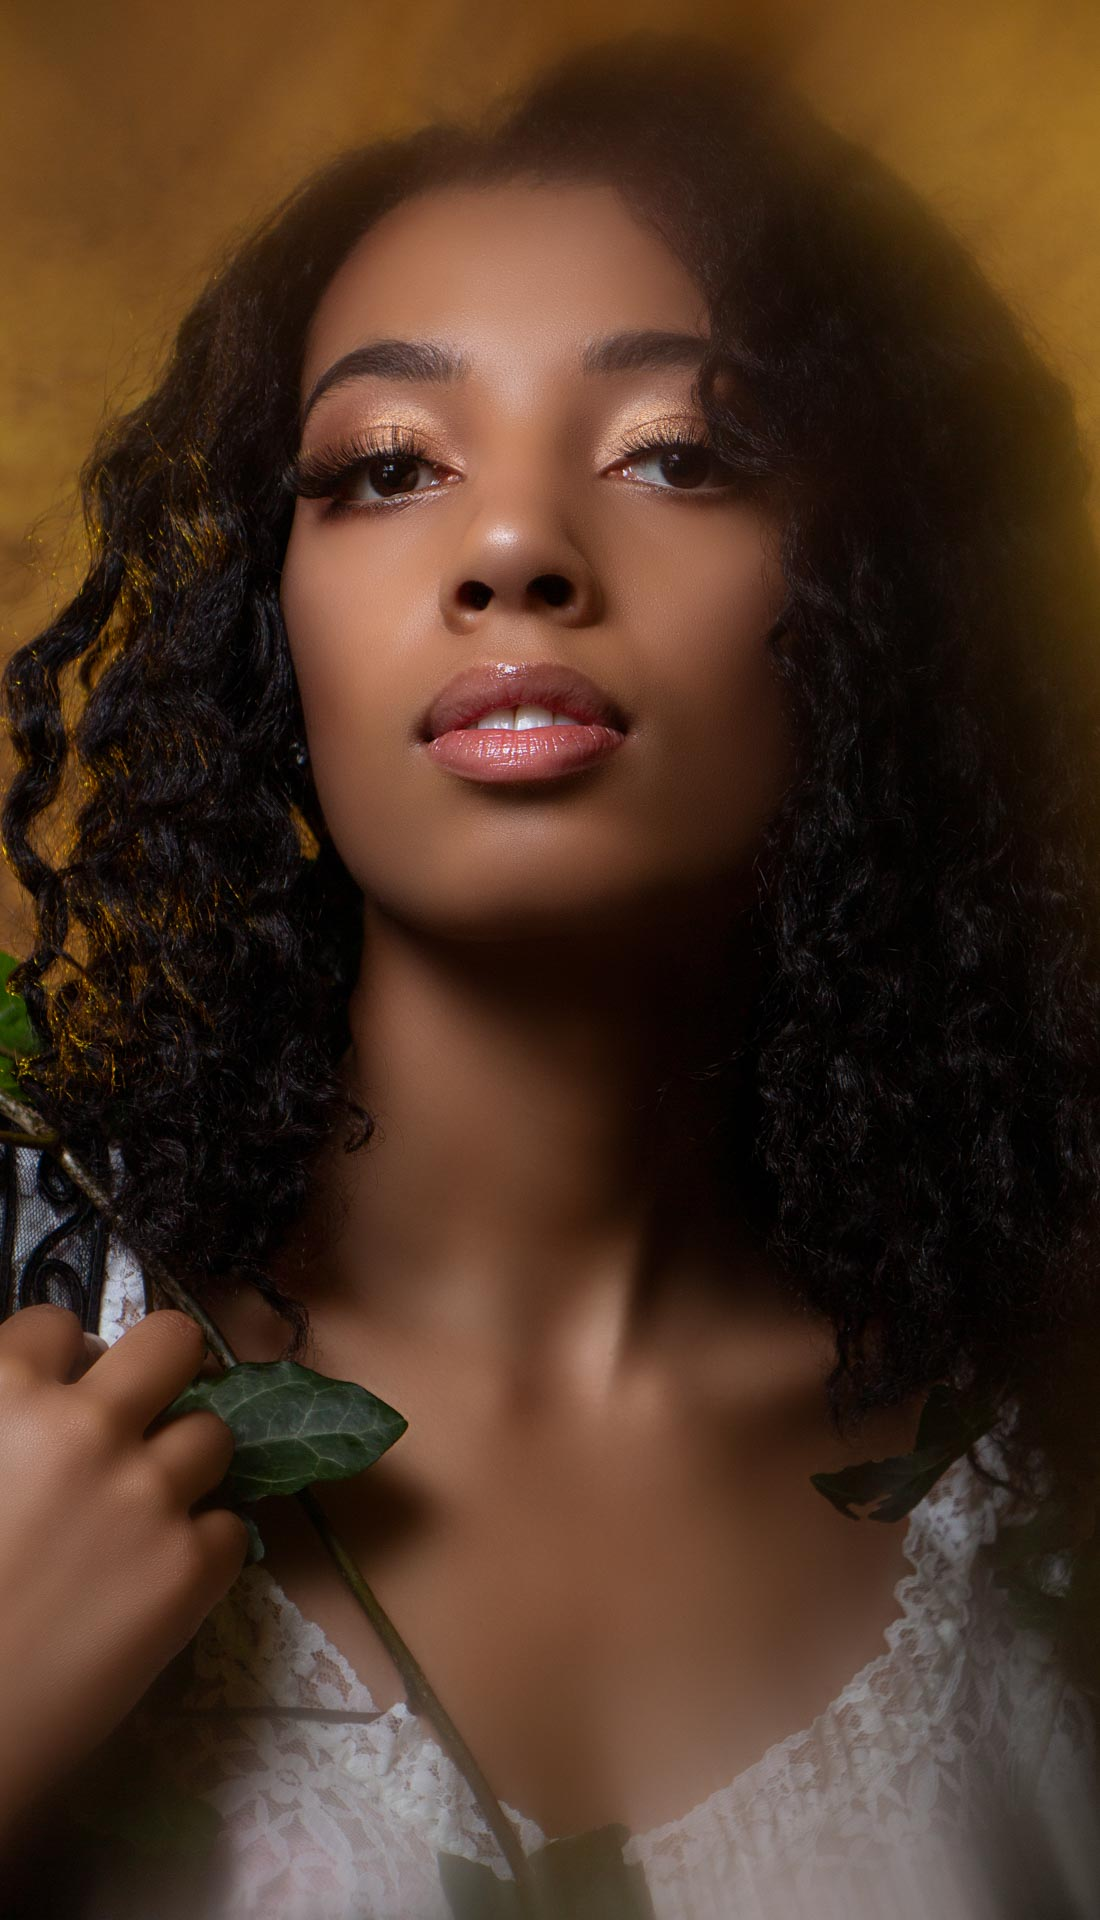 A beauty portrait of a black woman posing with ivy